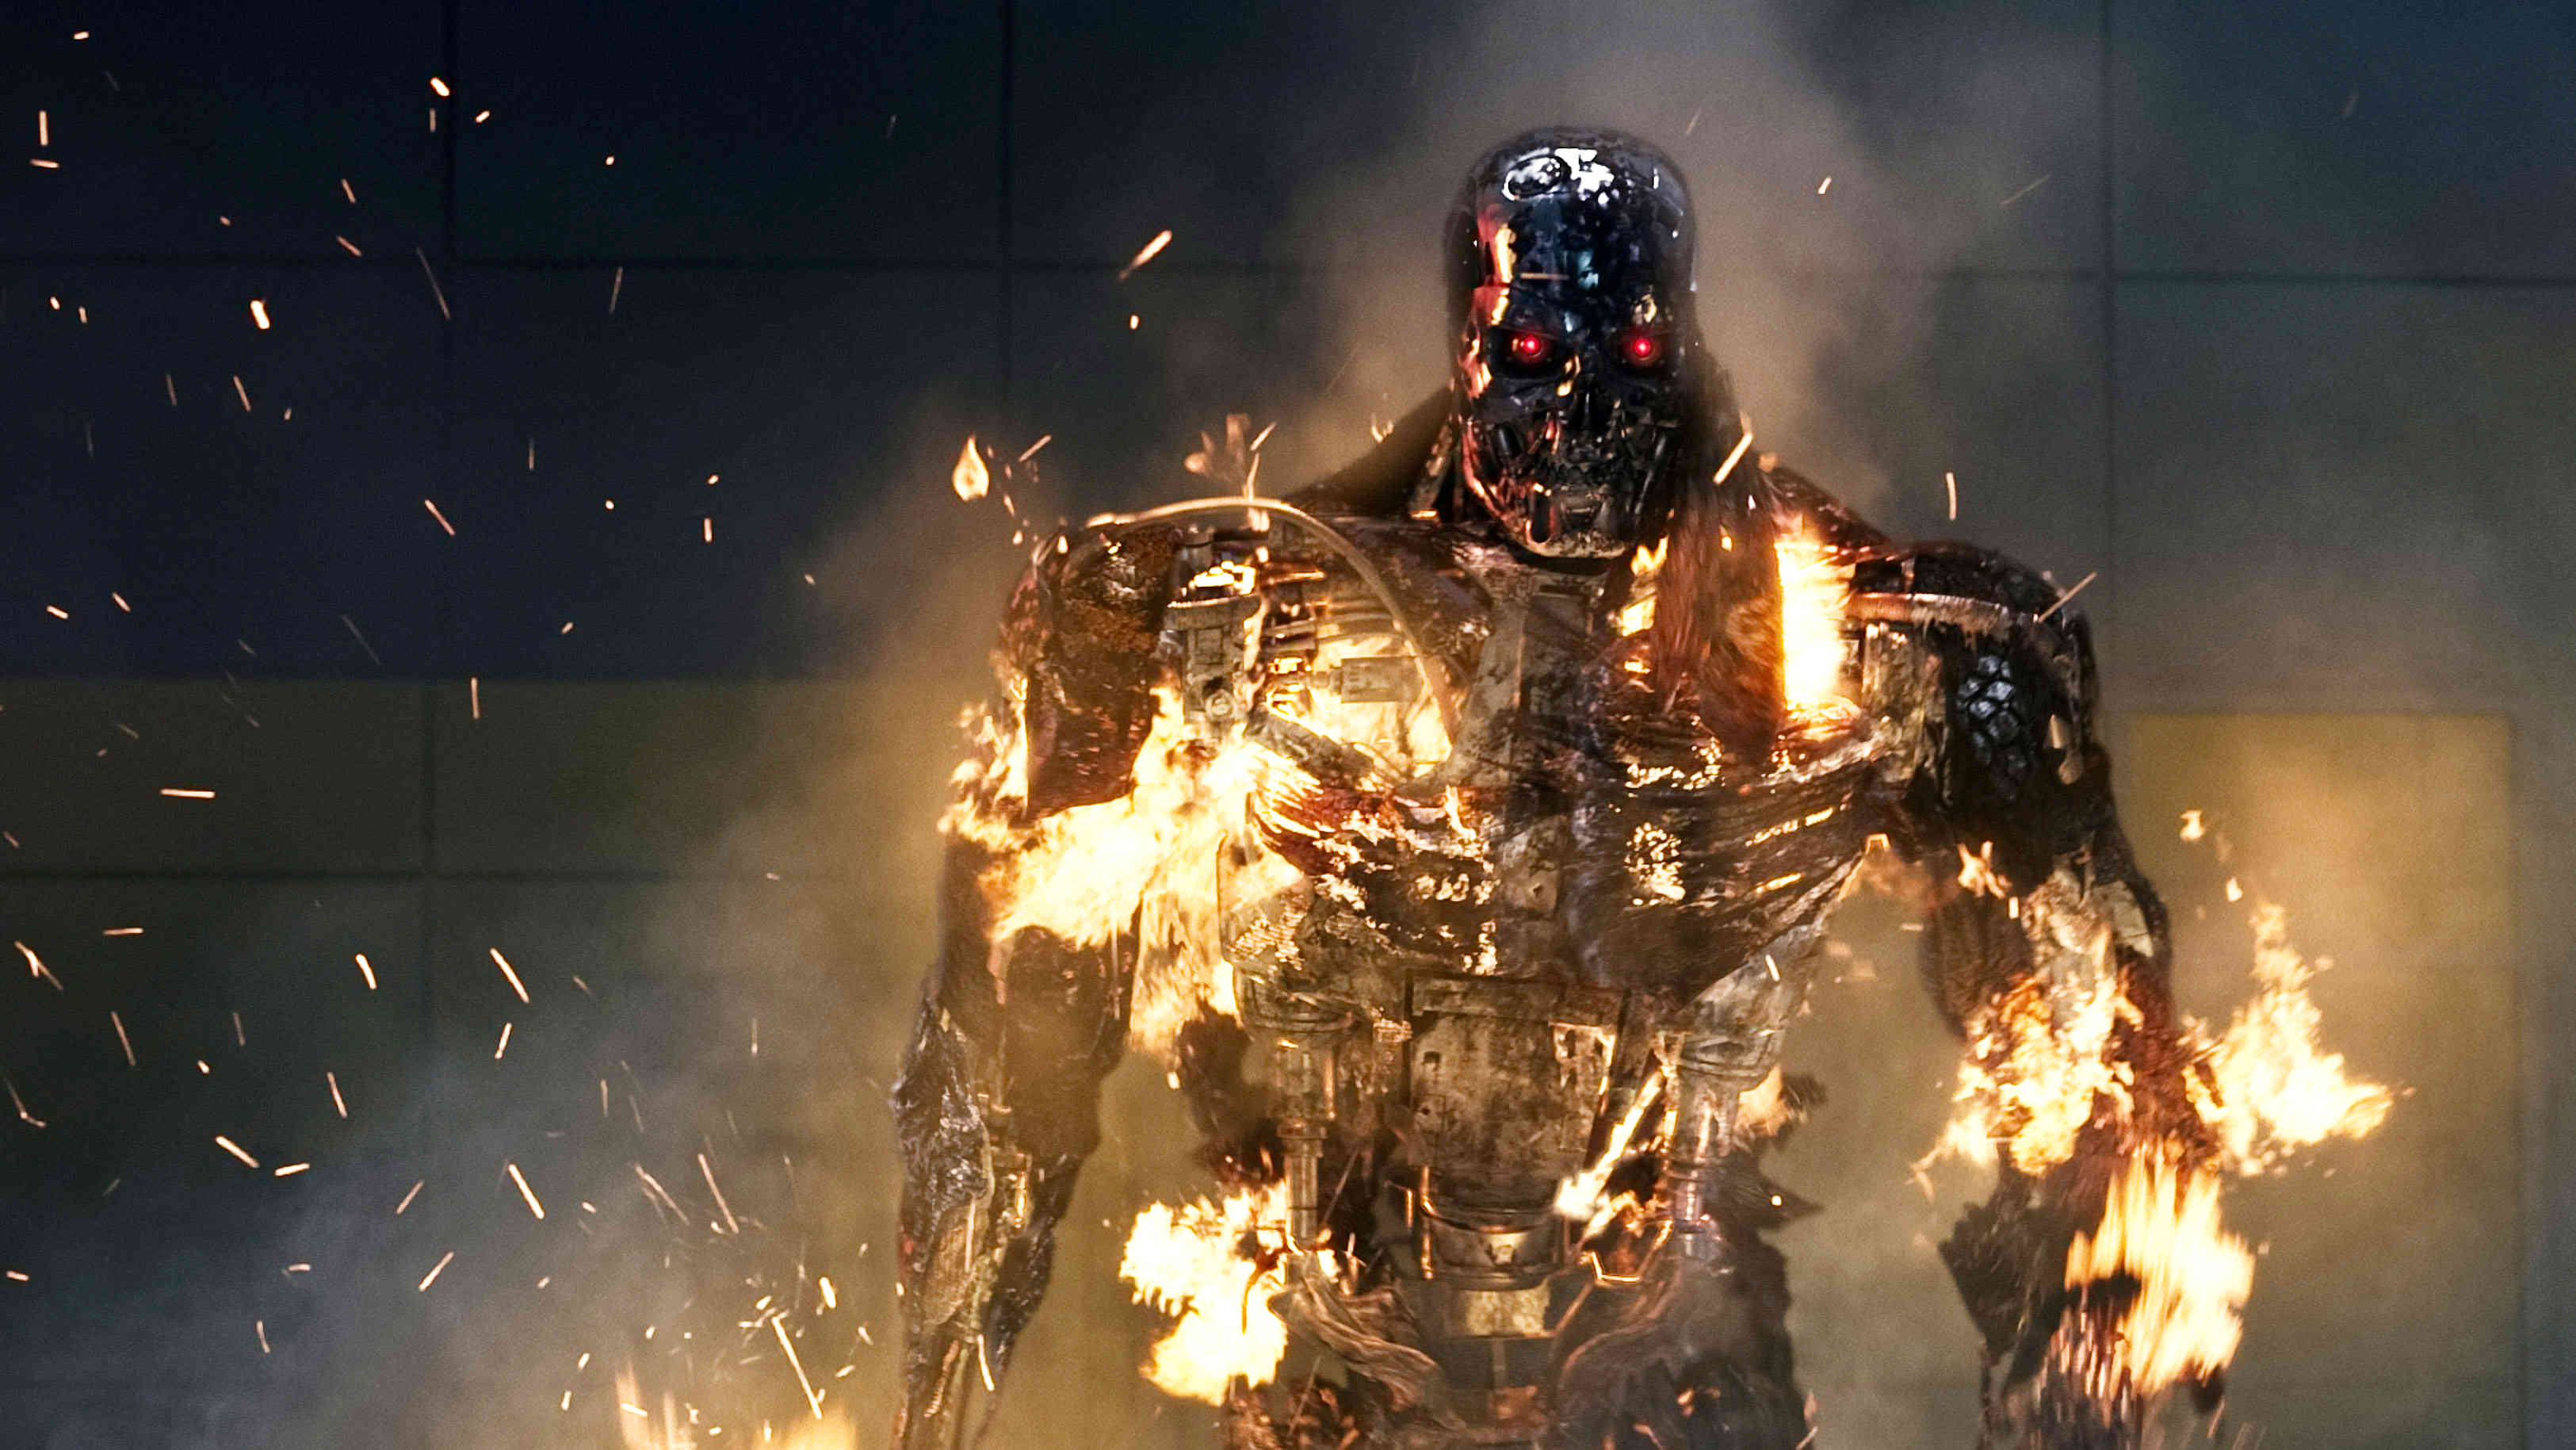 New 'Terminator' TV Series in the Works With  'X-Men' Writers